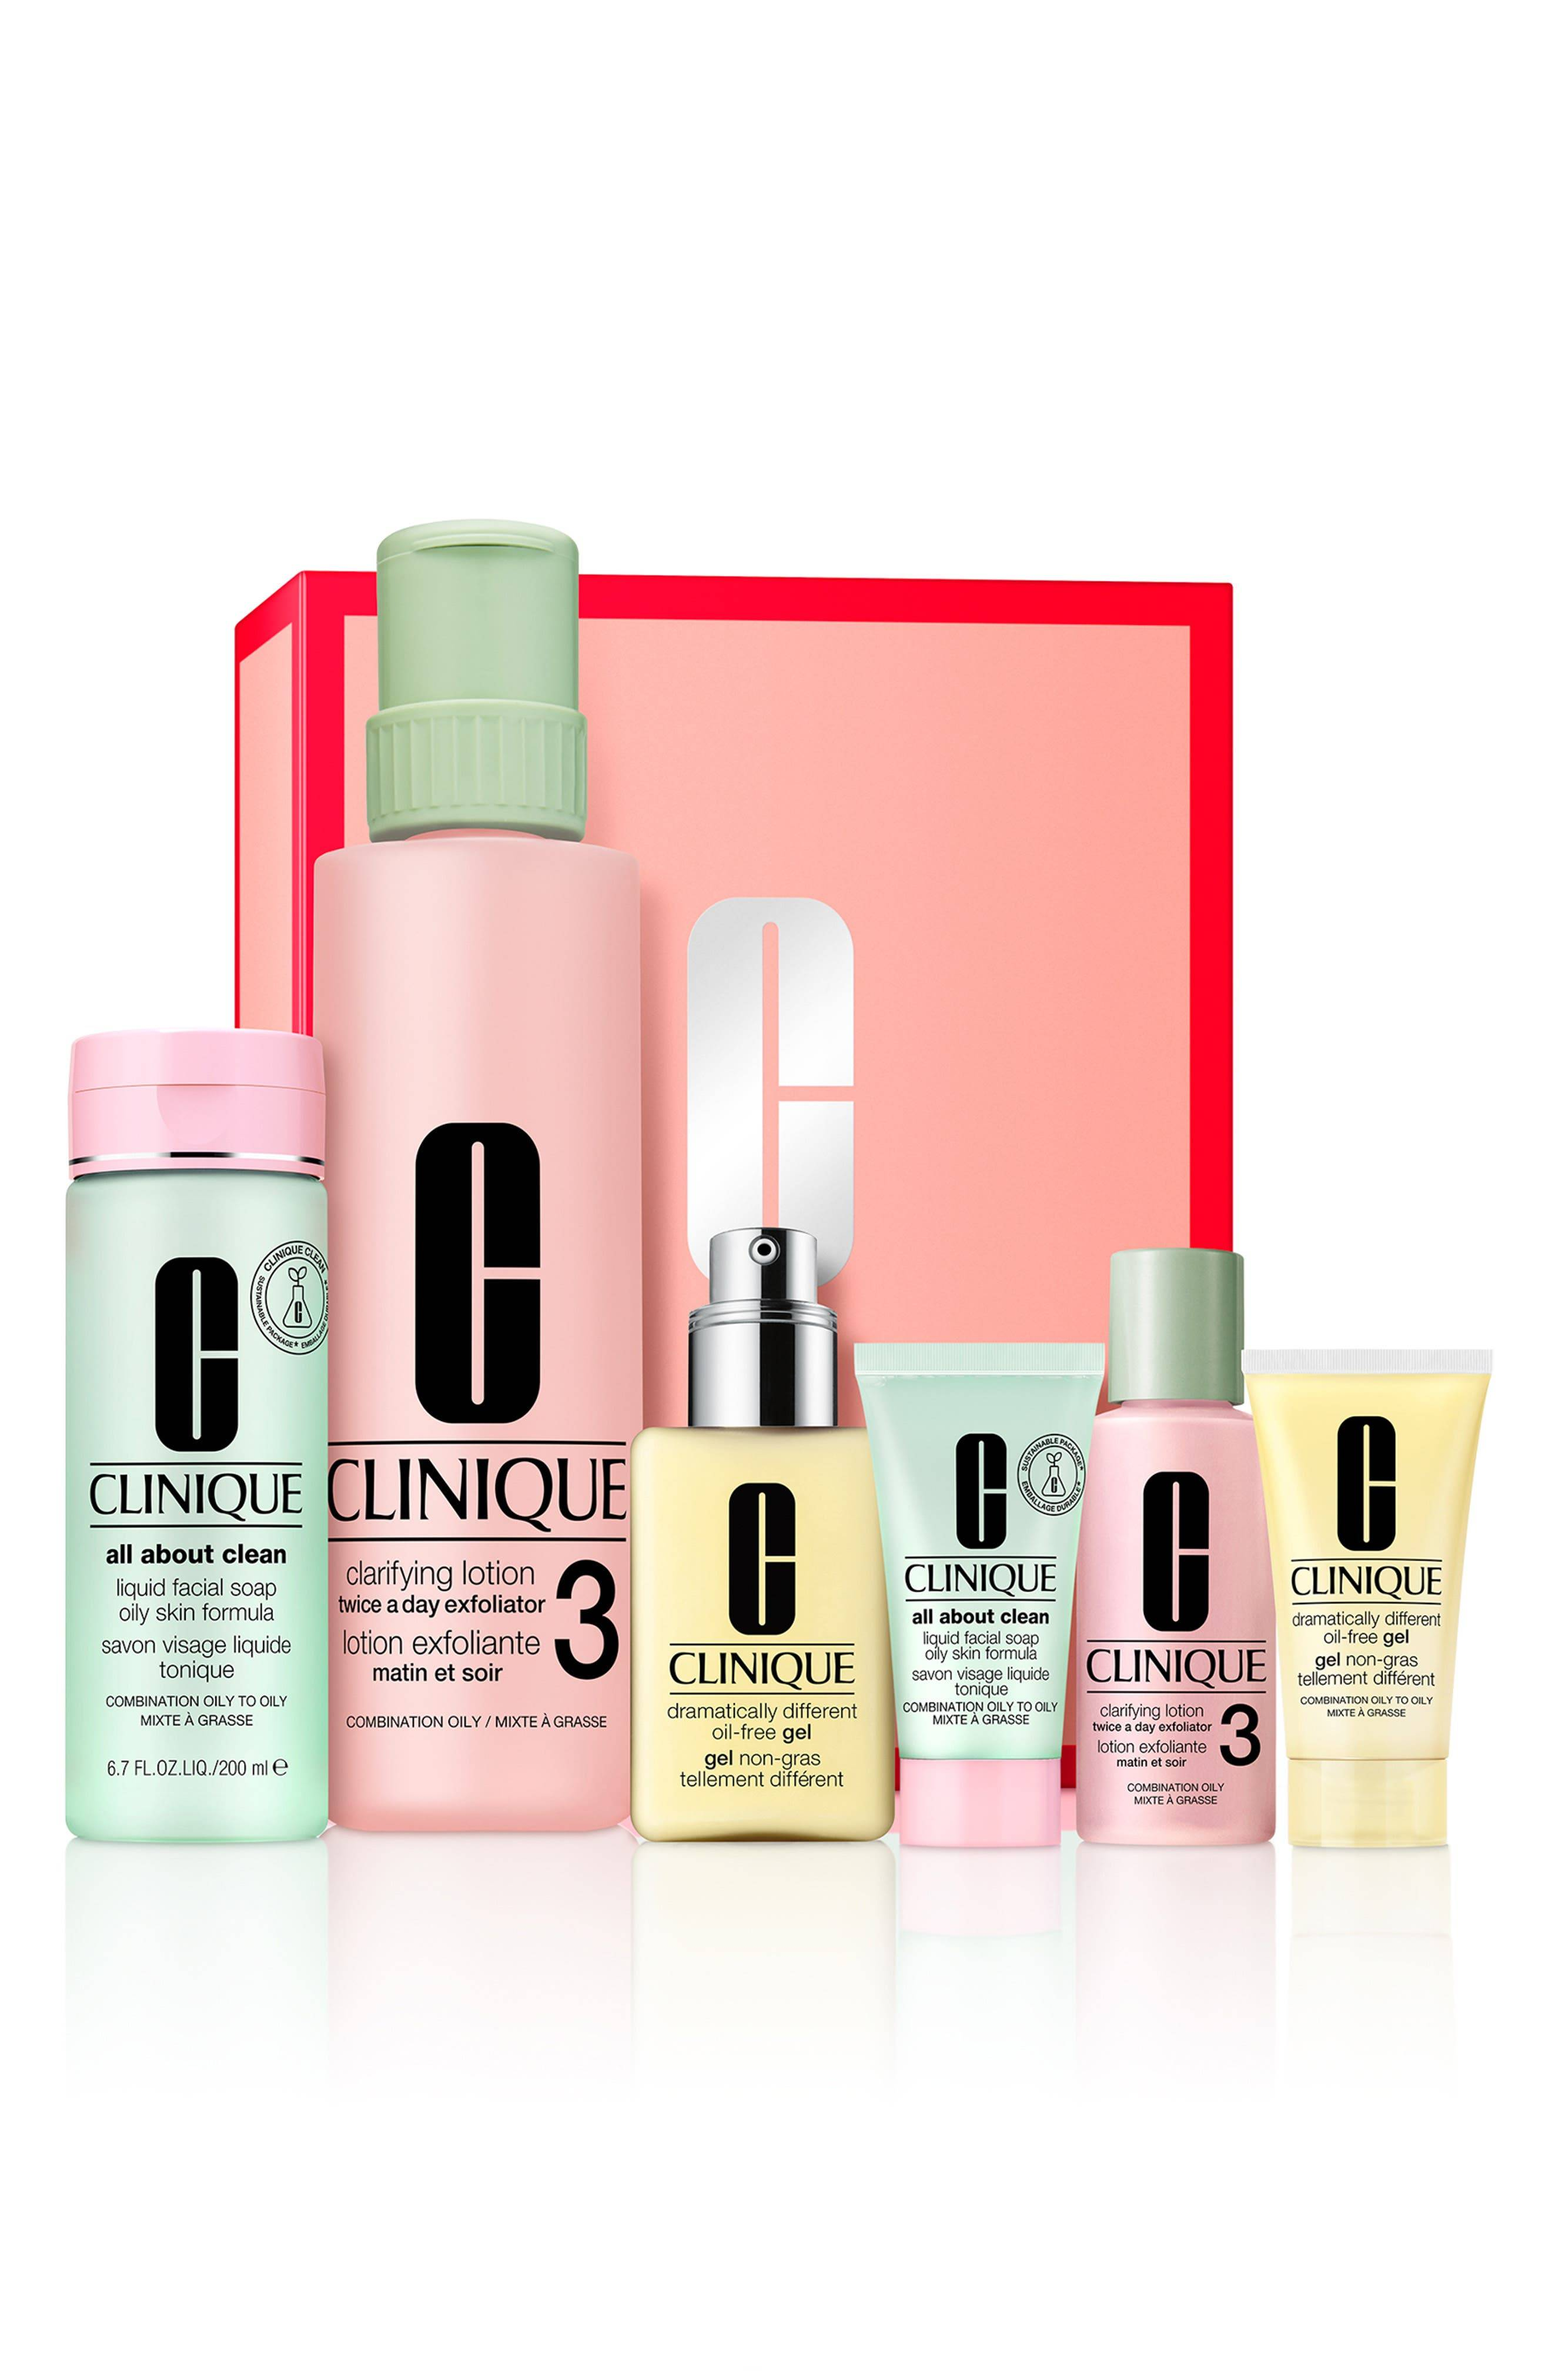 Clinique Great Skin Everywhere Home & Away Set For Combination Oily To Oily Skin